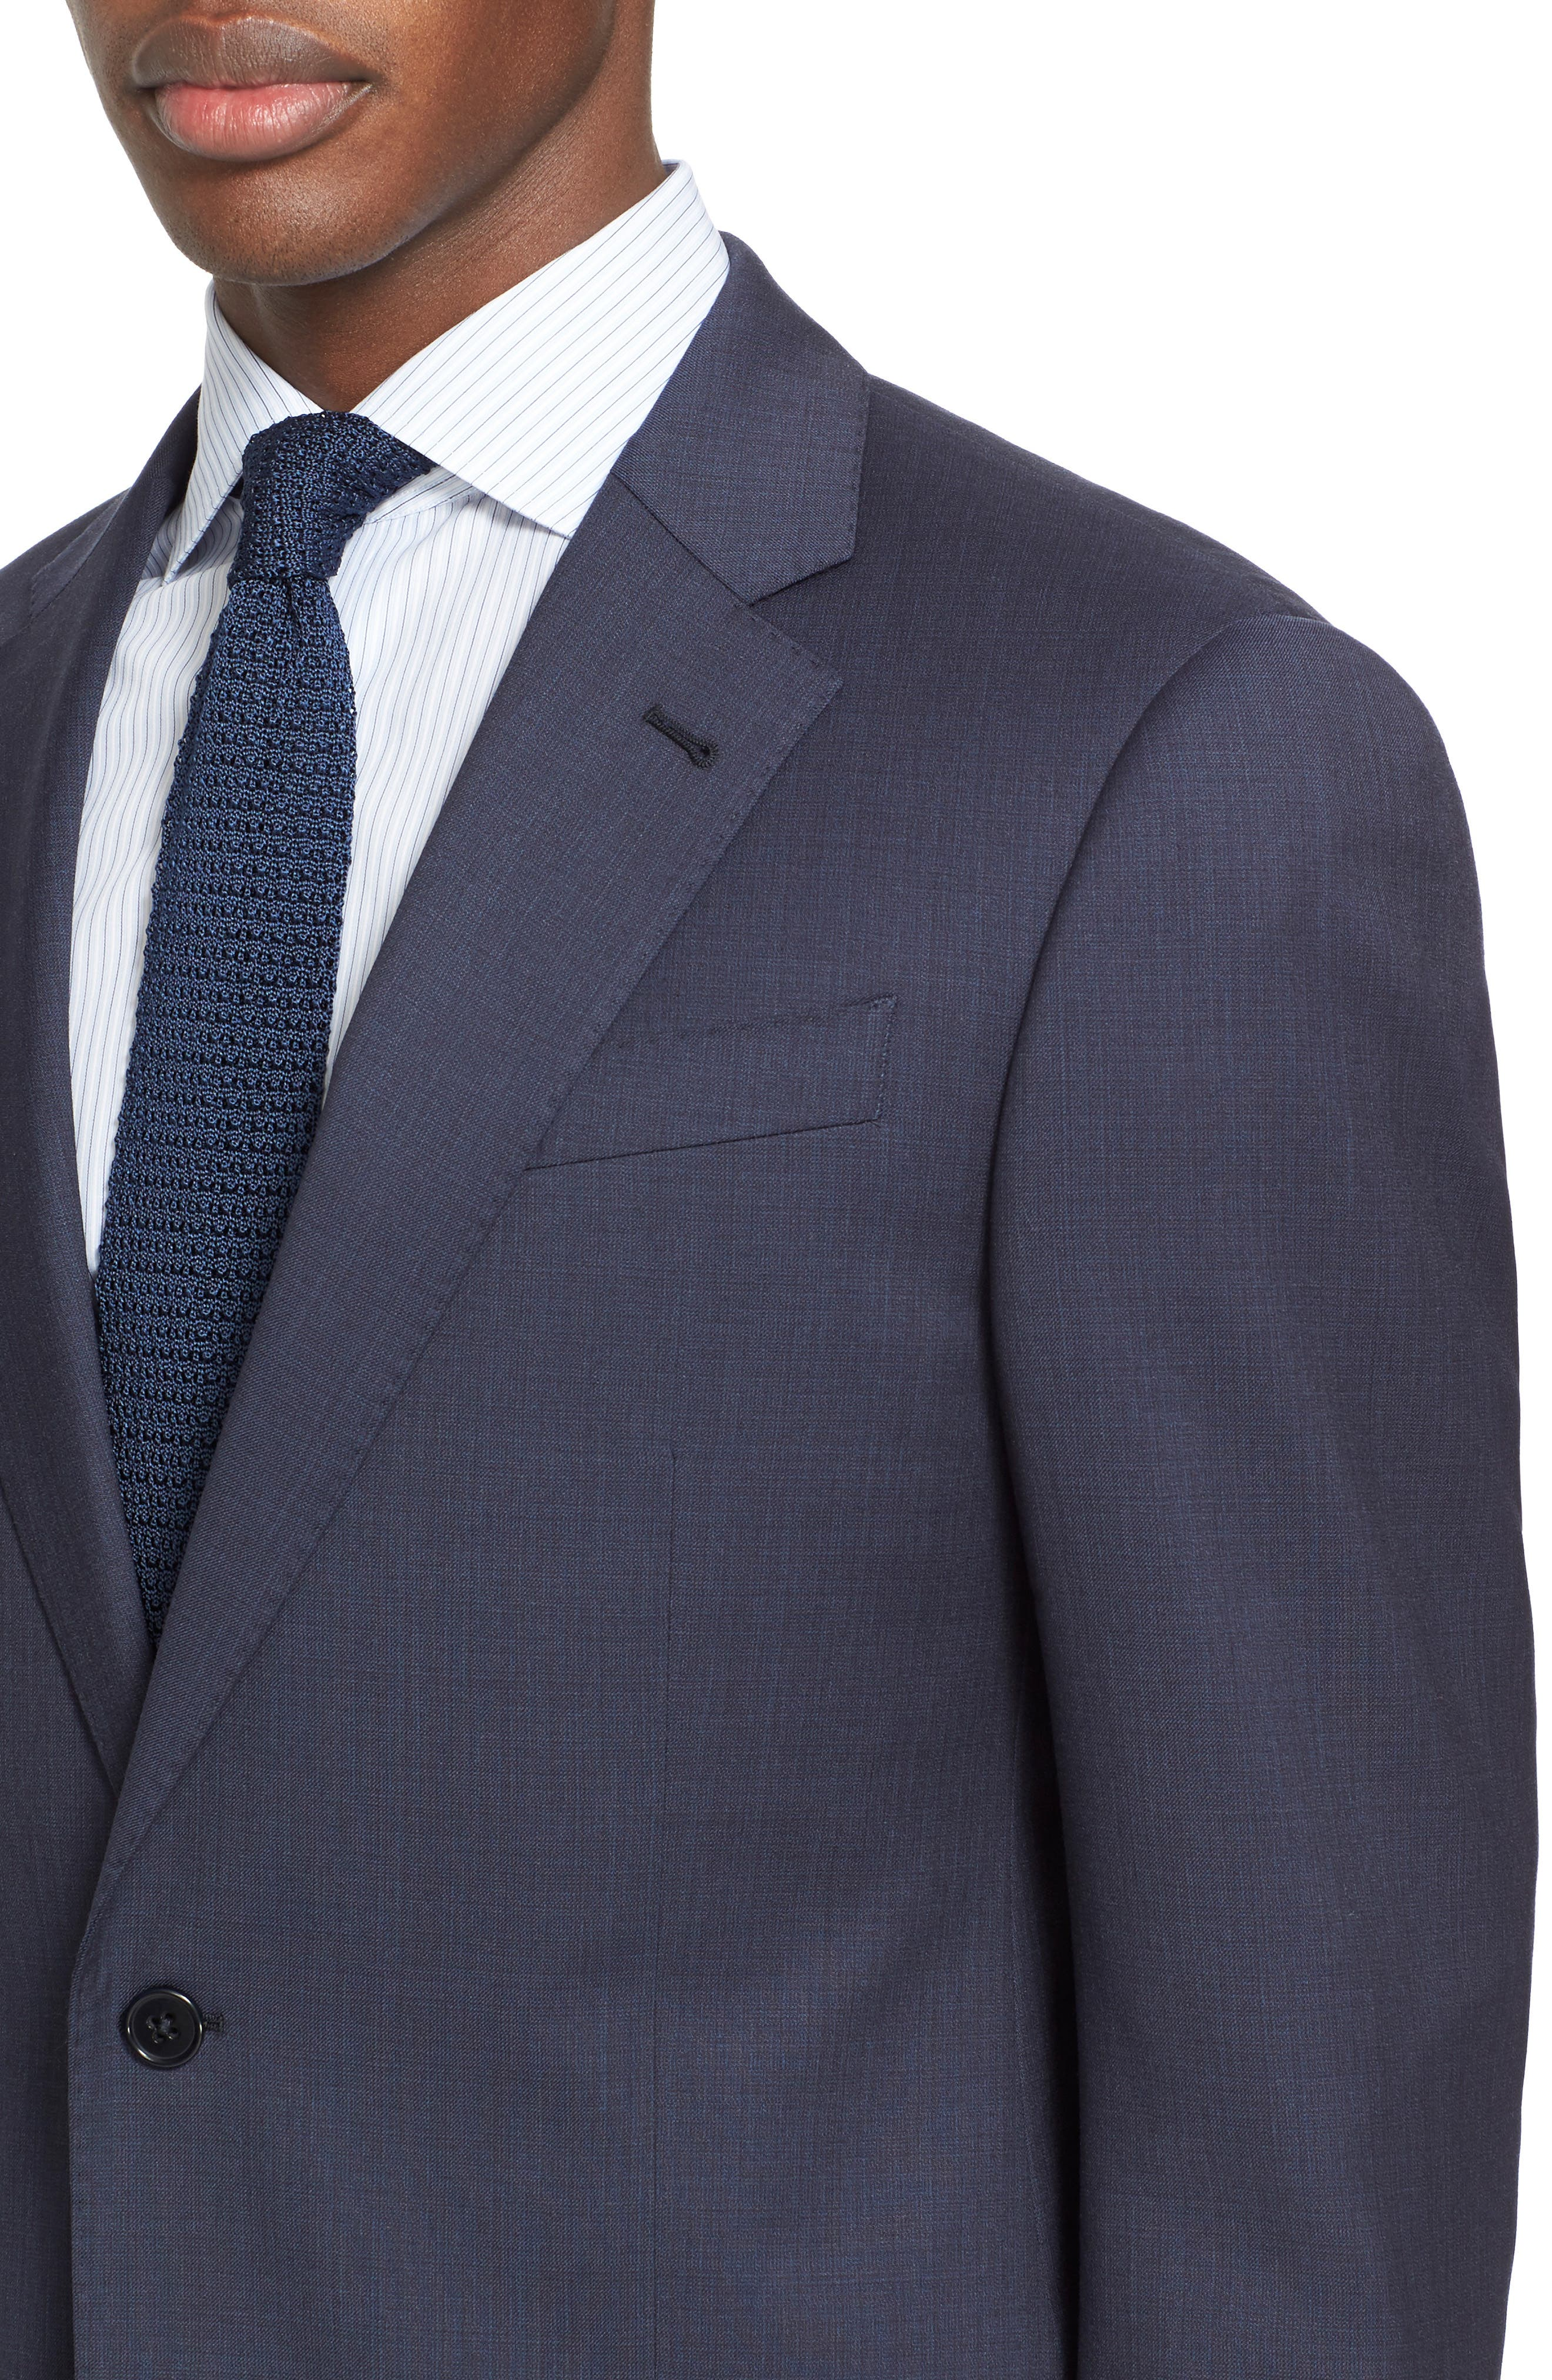 Trim Fit Solid Wool Suit,                             Alternate thumbnail 4, color,                             Navy